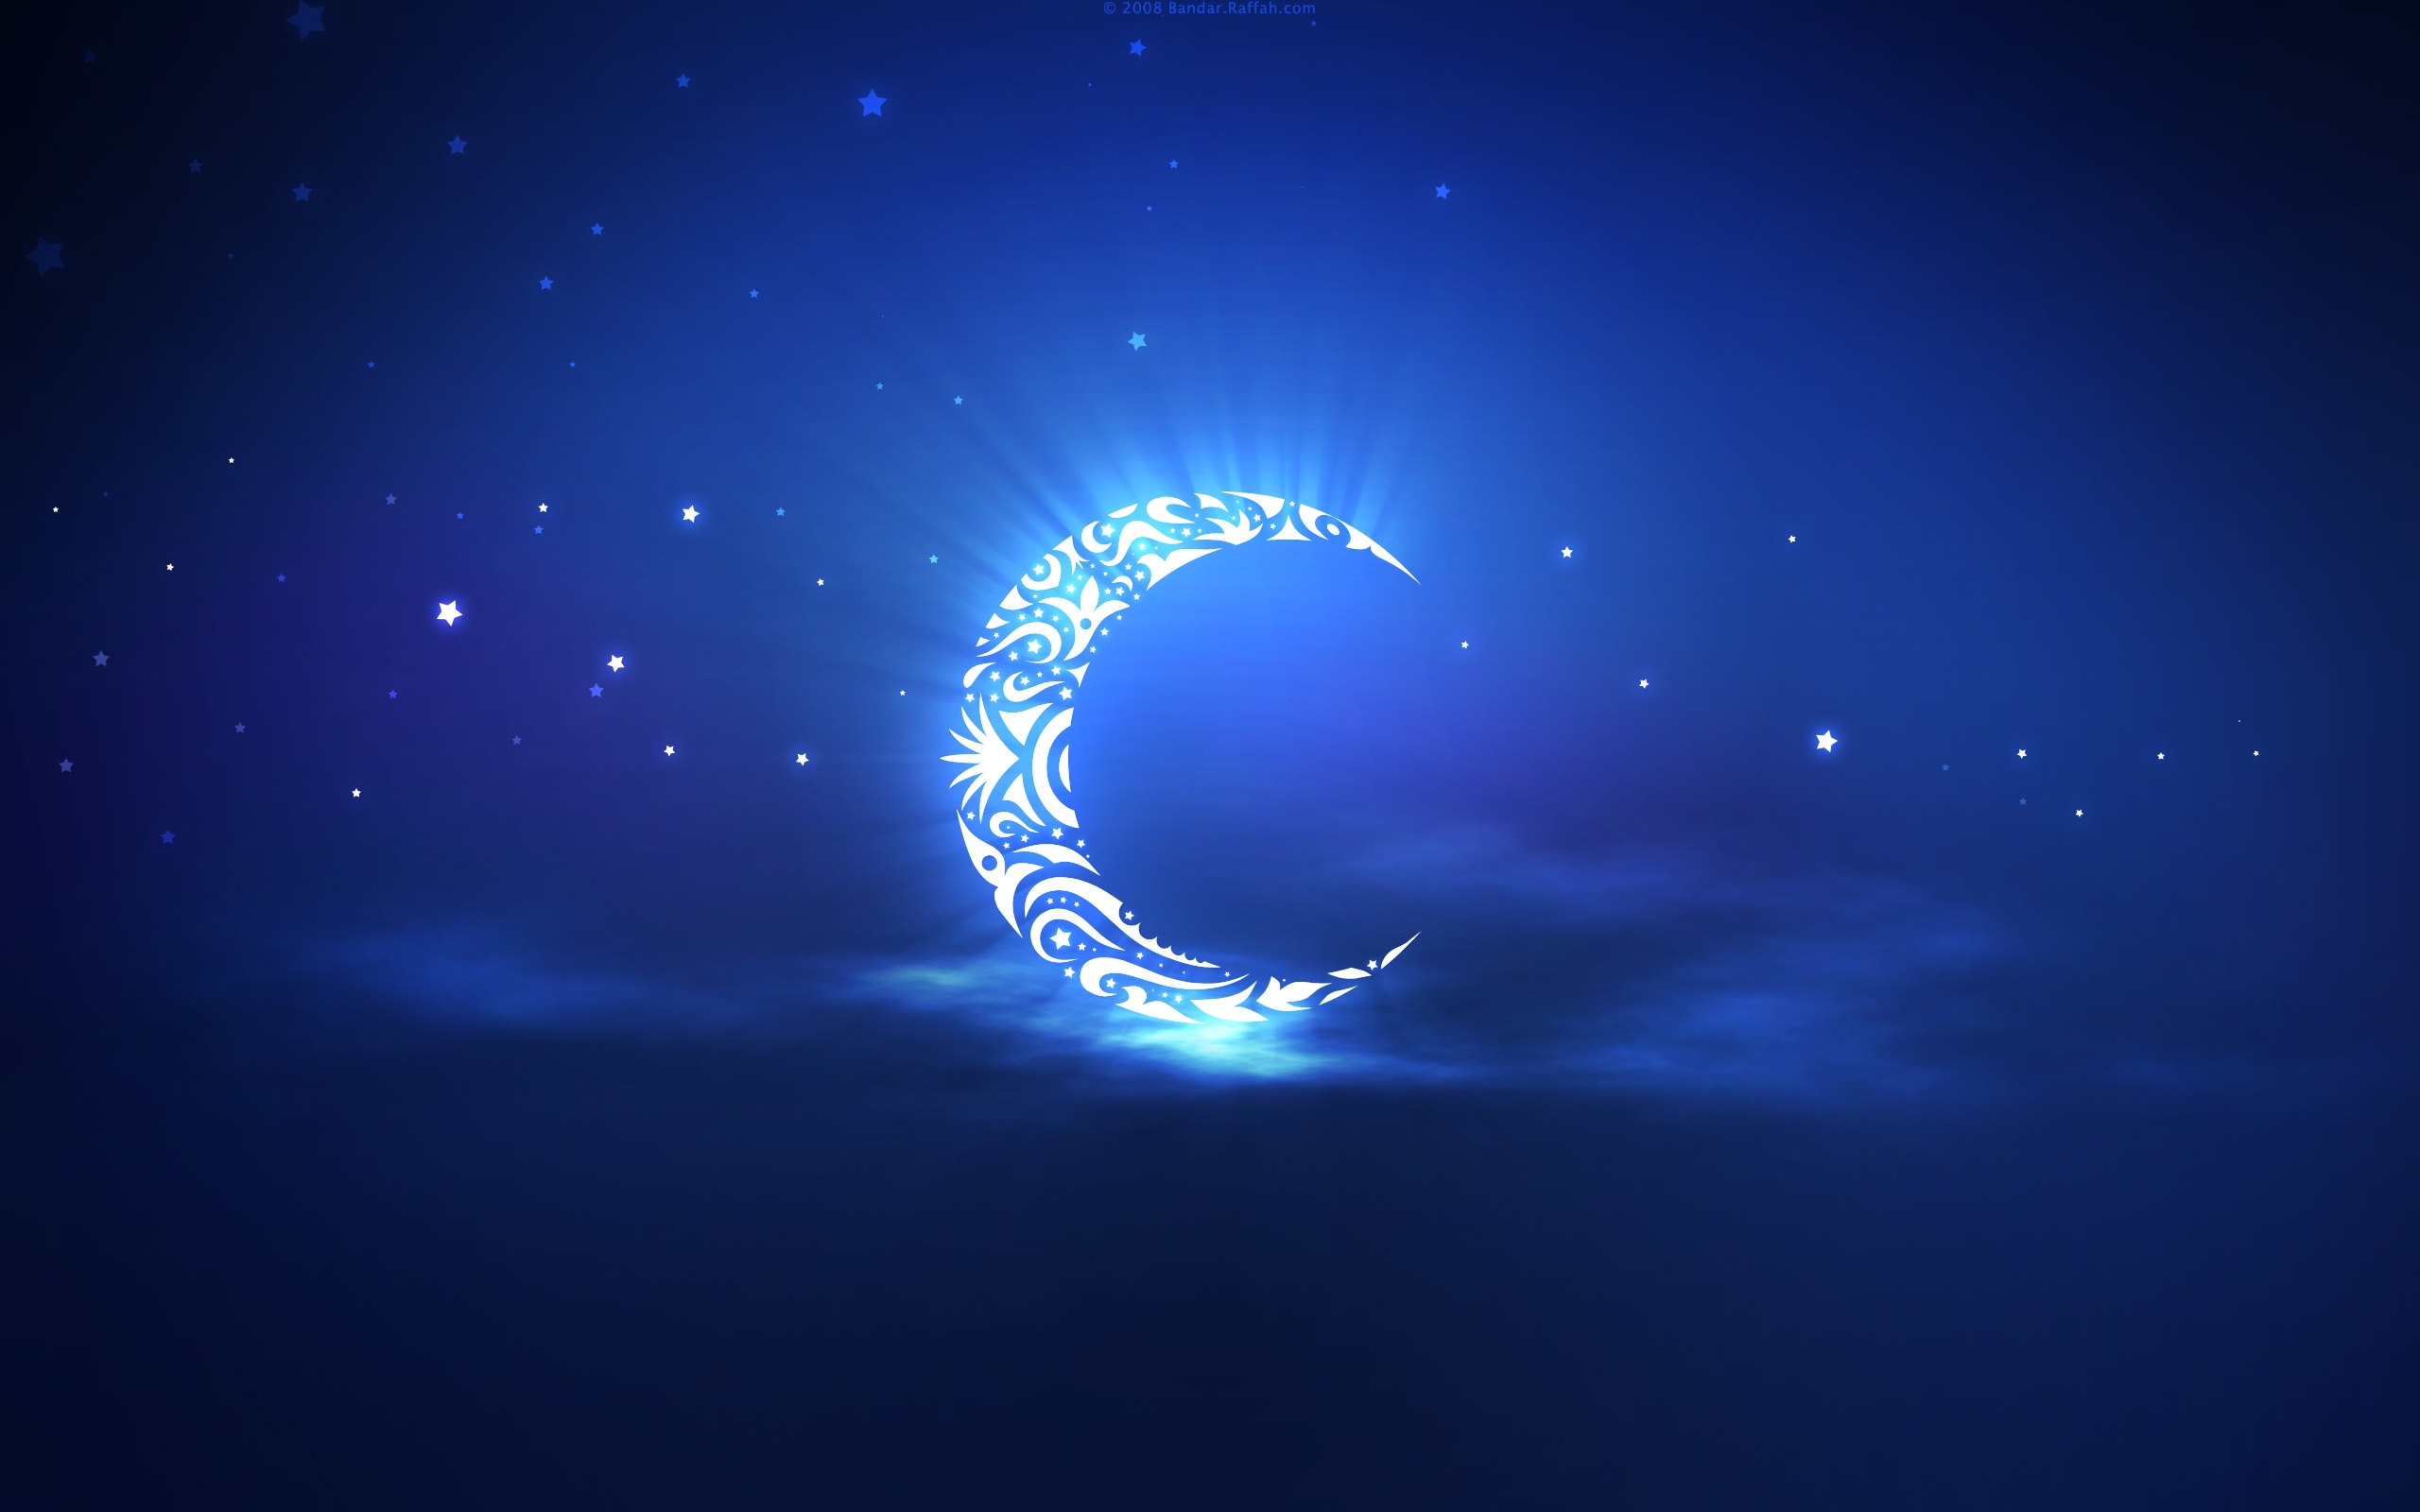 crescent moon cool wallpapers share this cool wallpaper on facebook 2560x1600